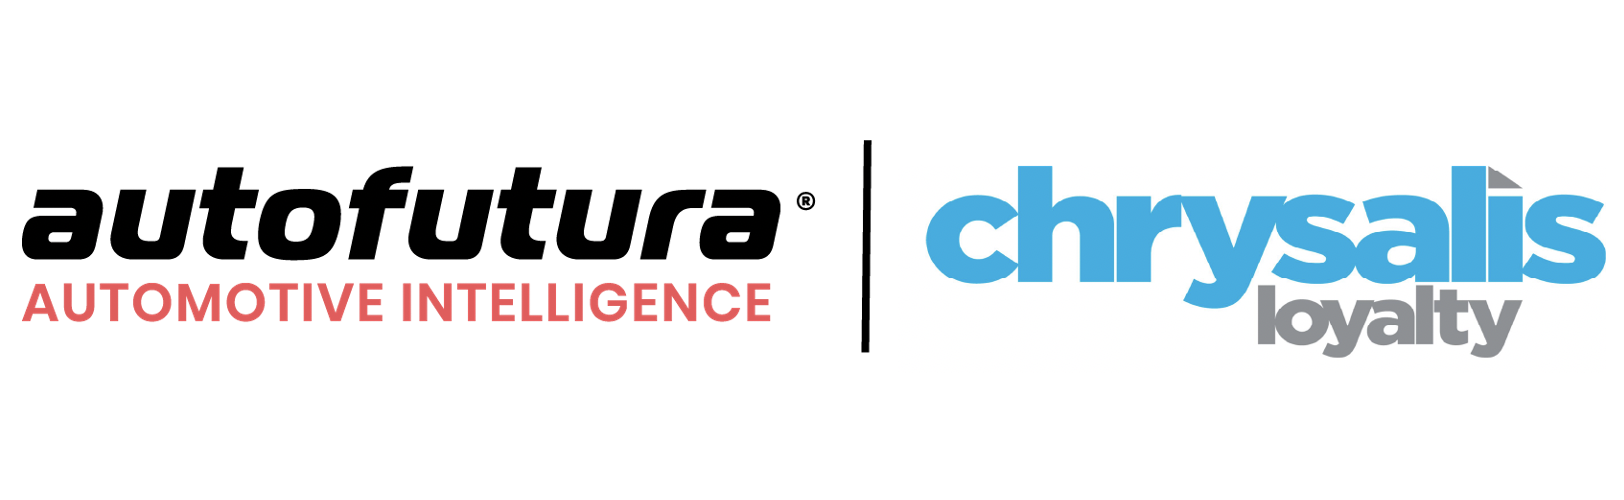 AUTOFUTURA ACQUIRES CHRYSALIS LOYALTY image